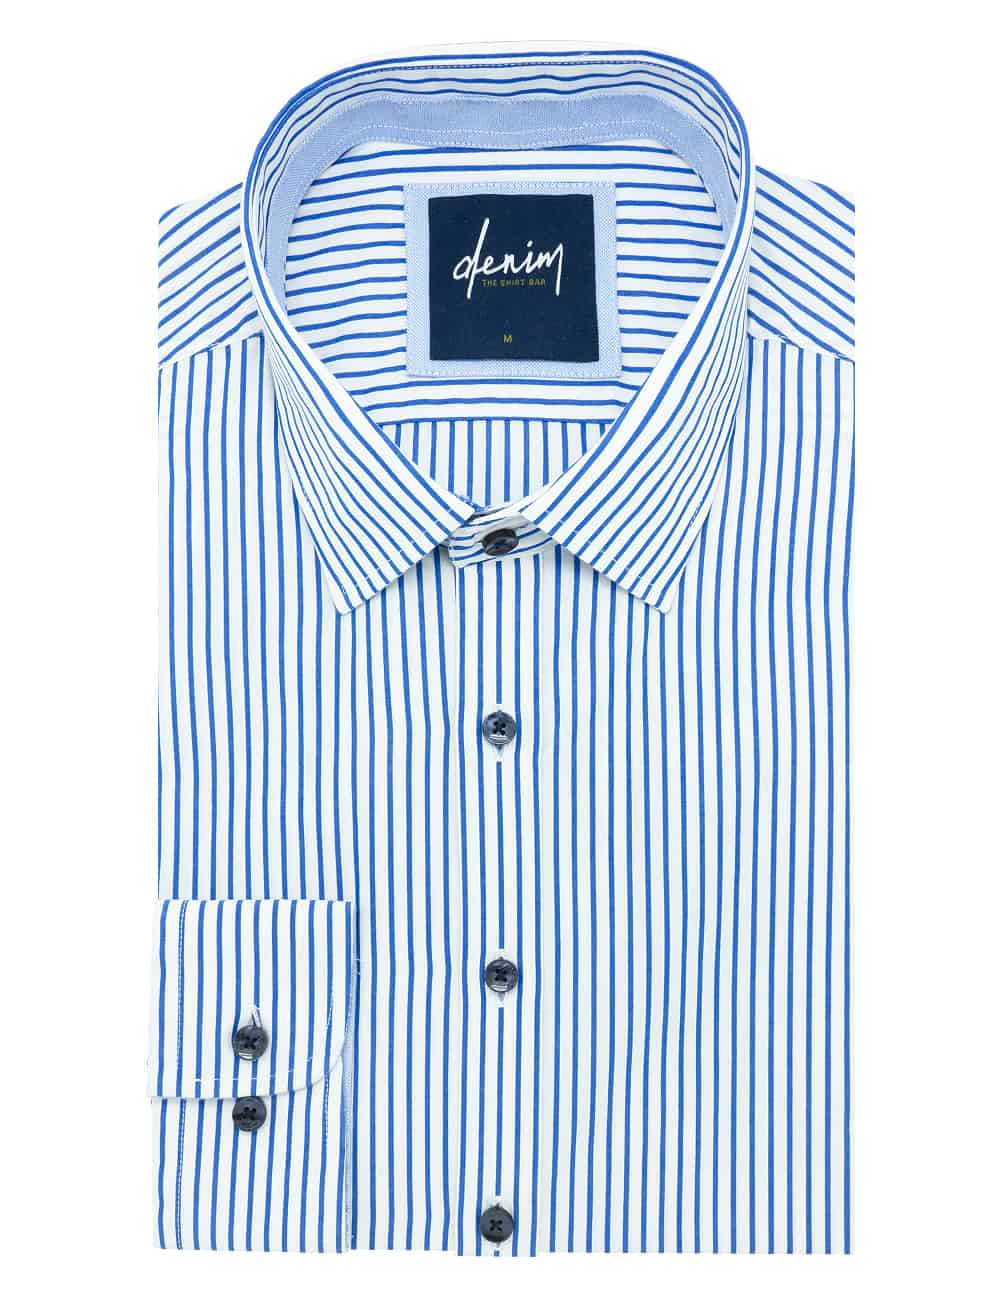 White with Blue Stripes Custom / Relaxed Fit Long Sleeve Shirt - RF2BA5.7